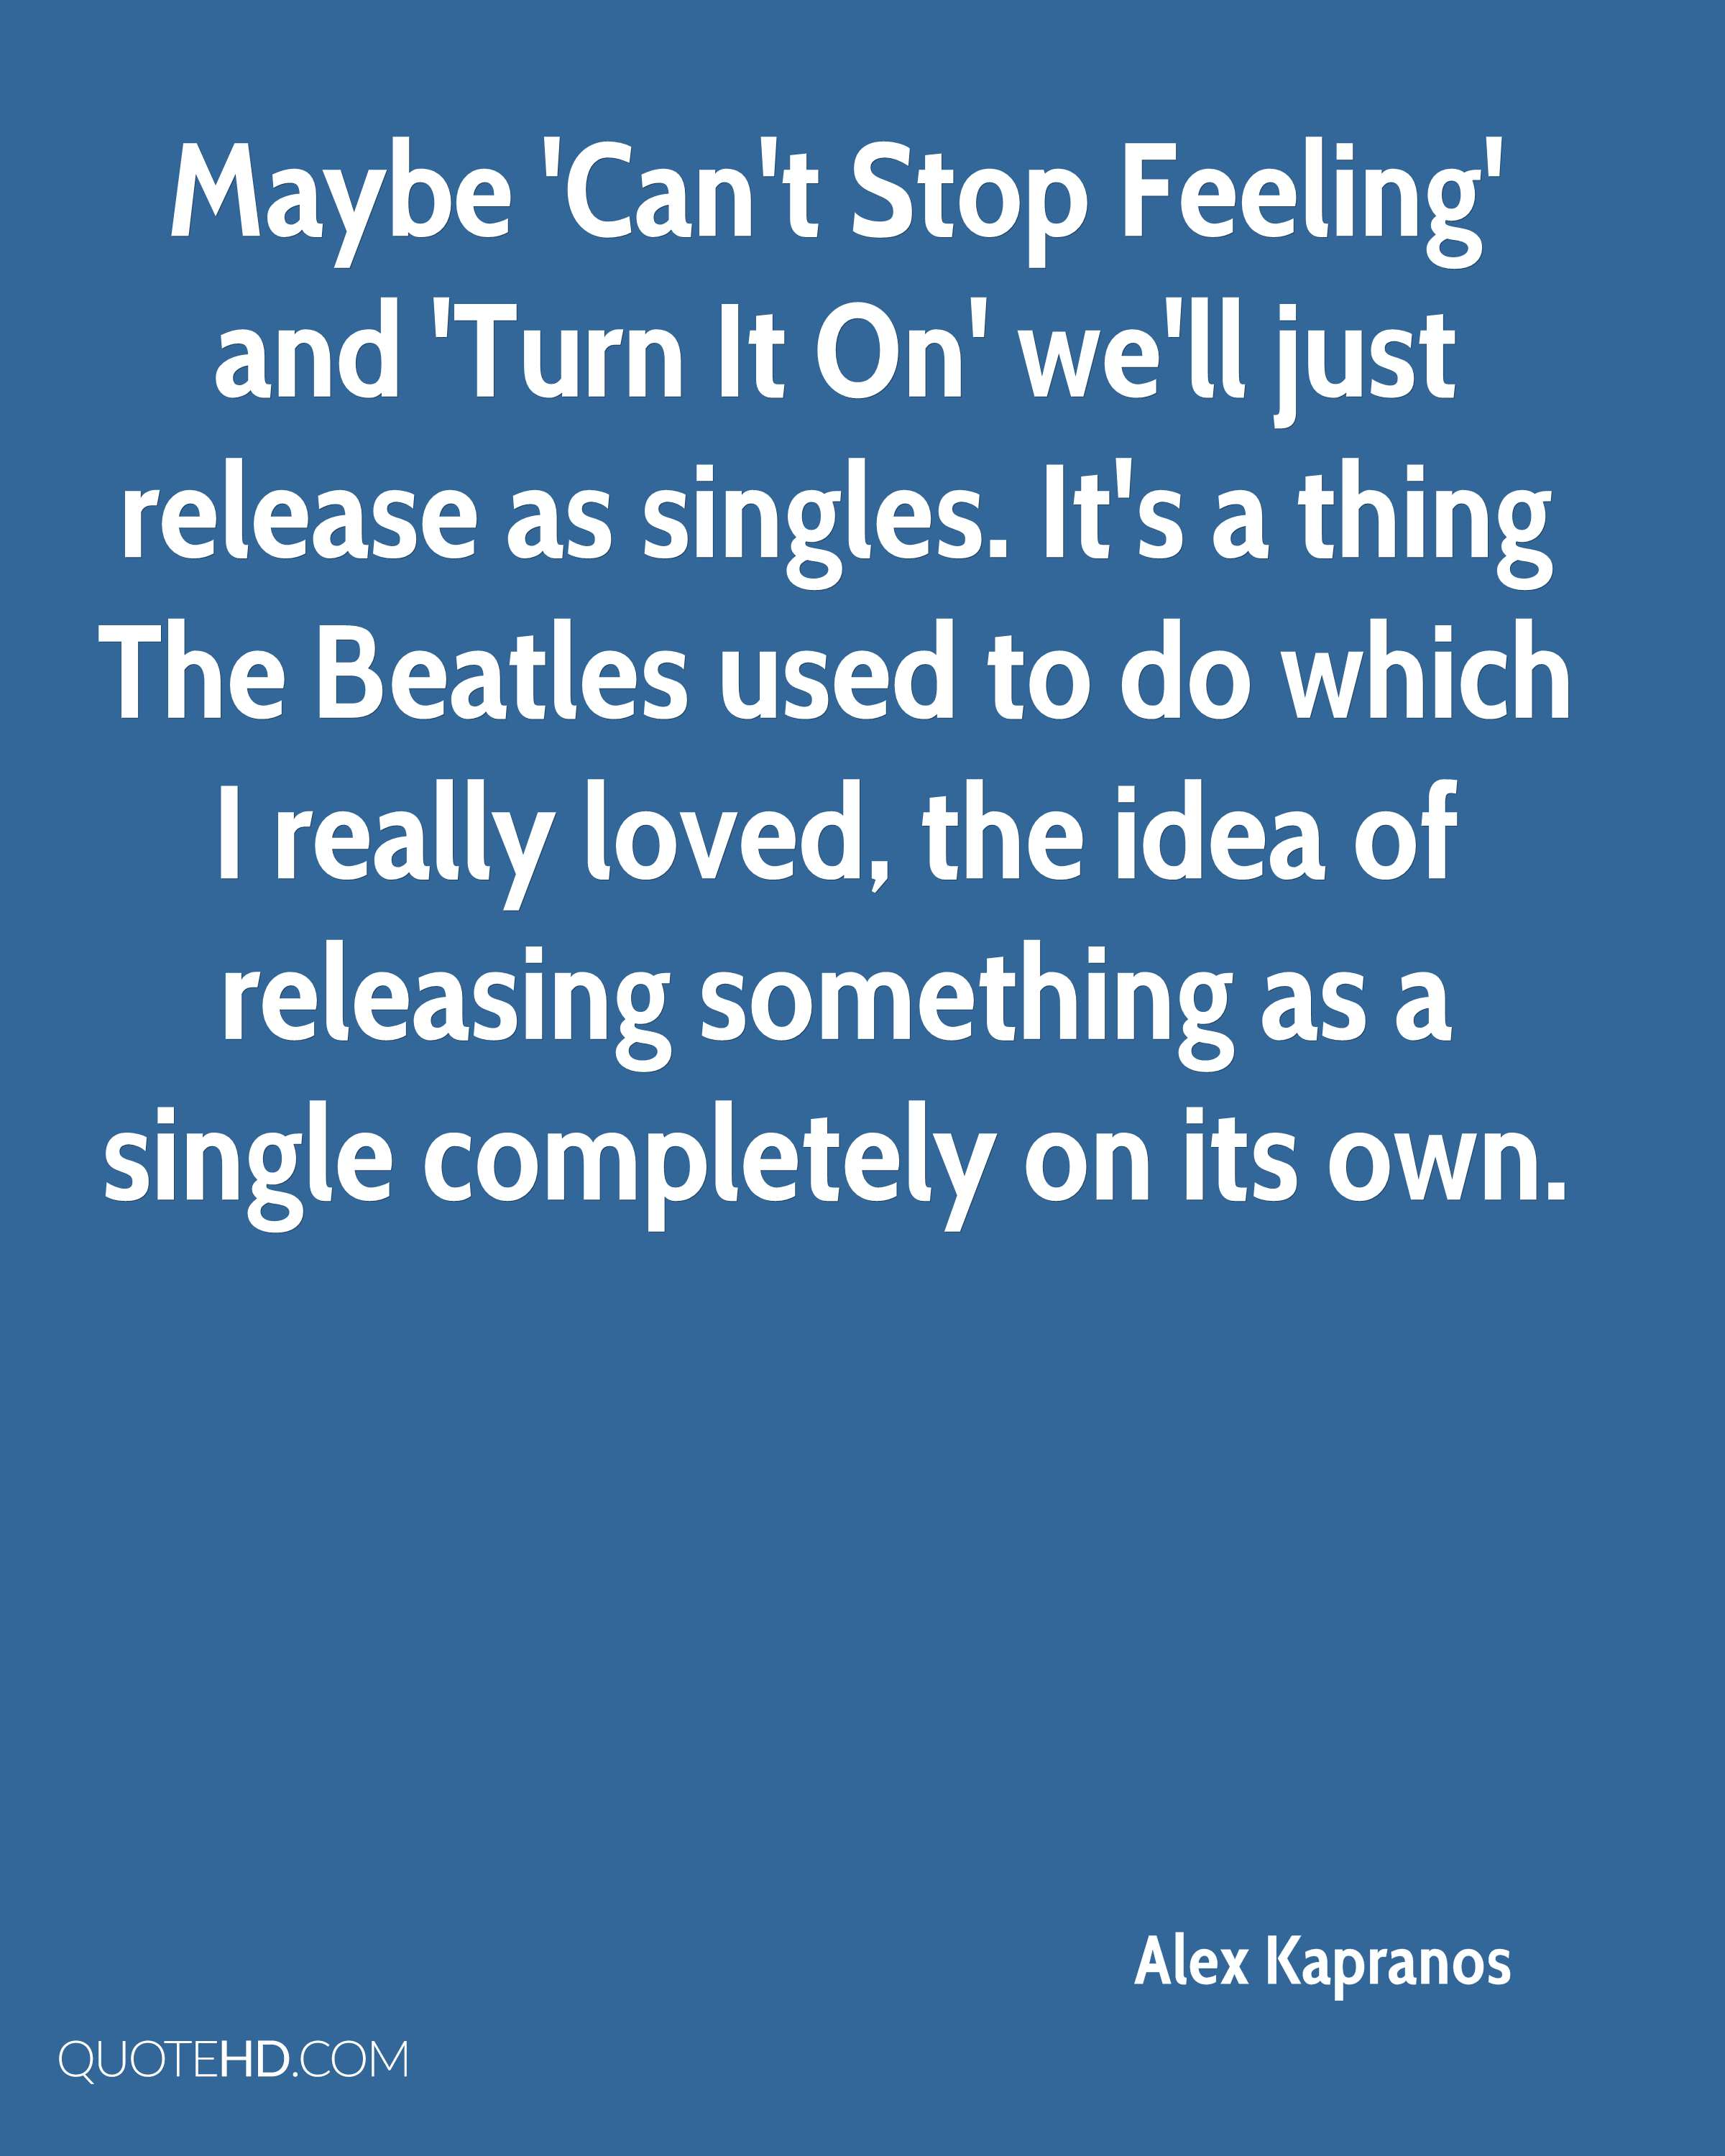 Maybe 'Can't Stop Feeling' and 'Turn It On' we'll just release as singles. It's a thing The Beatles used to do which I really loved, the idea of releasing something as a single completely on its own.